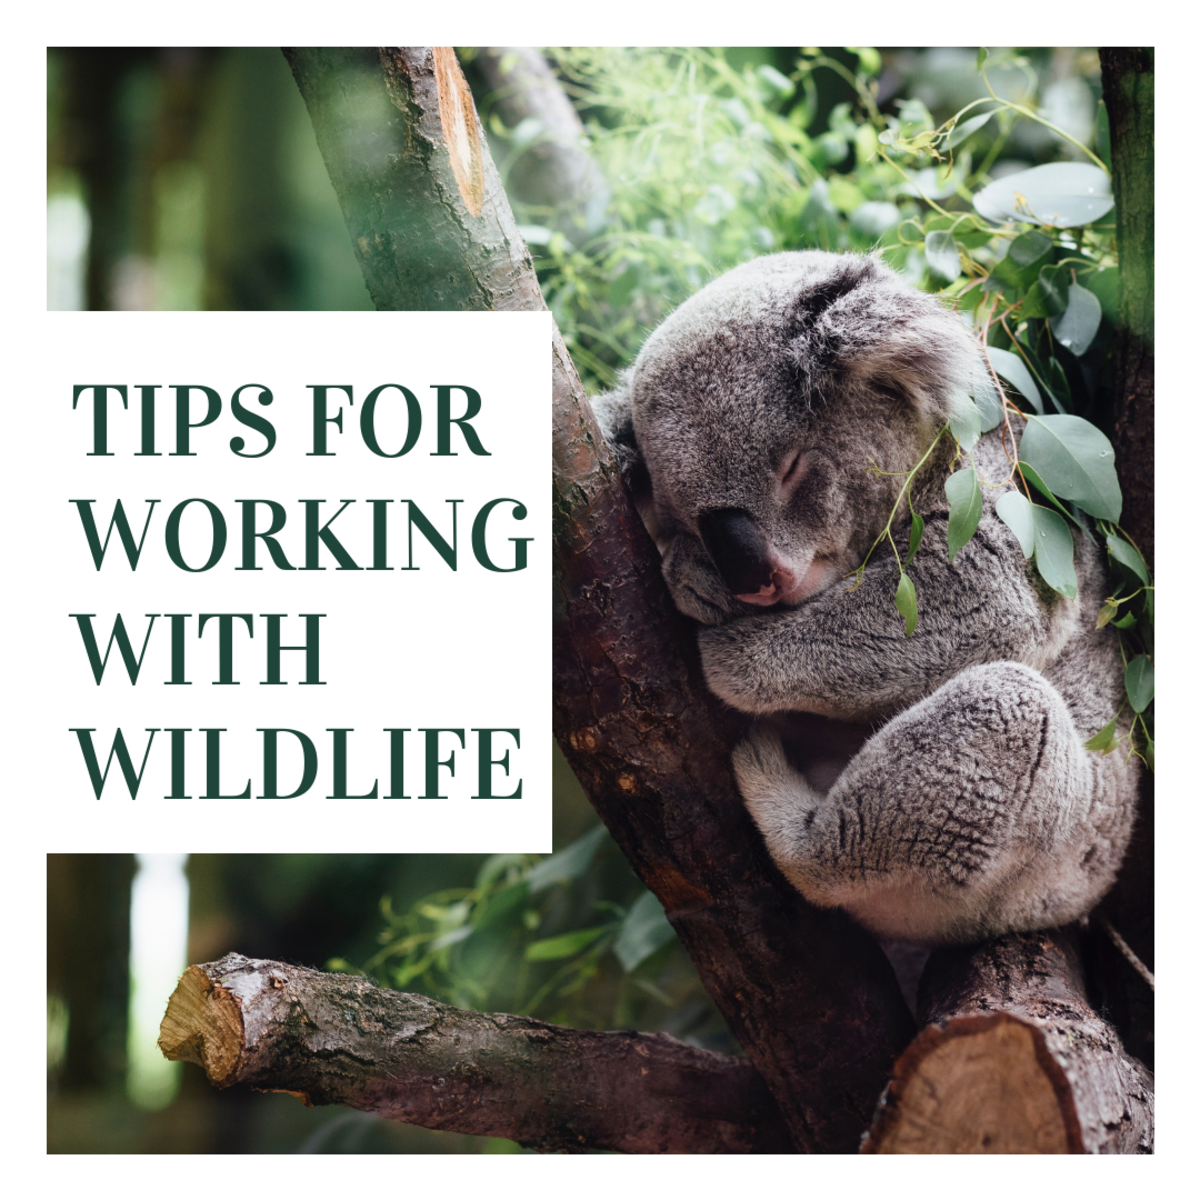 Career Options for Working With Wildlife